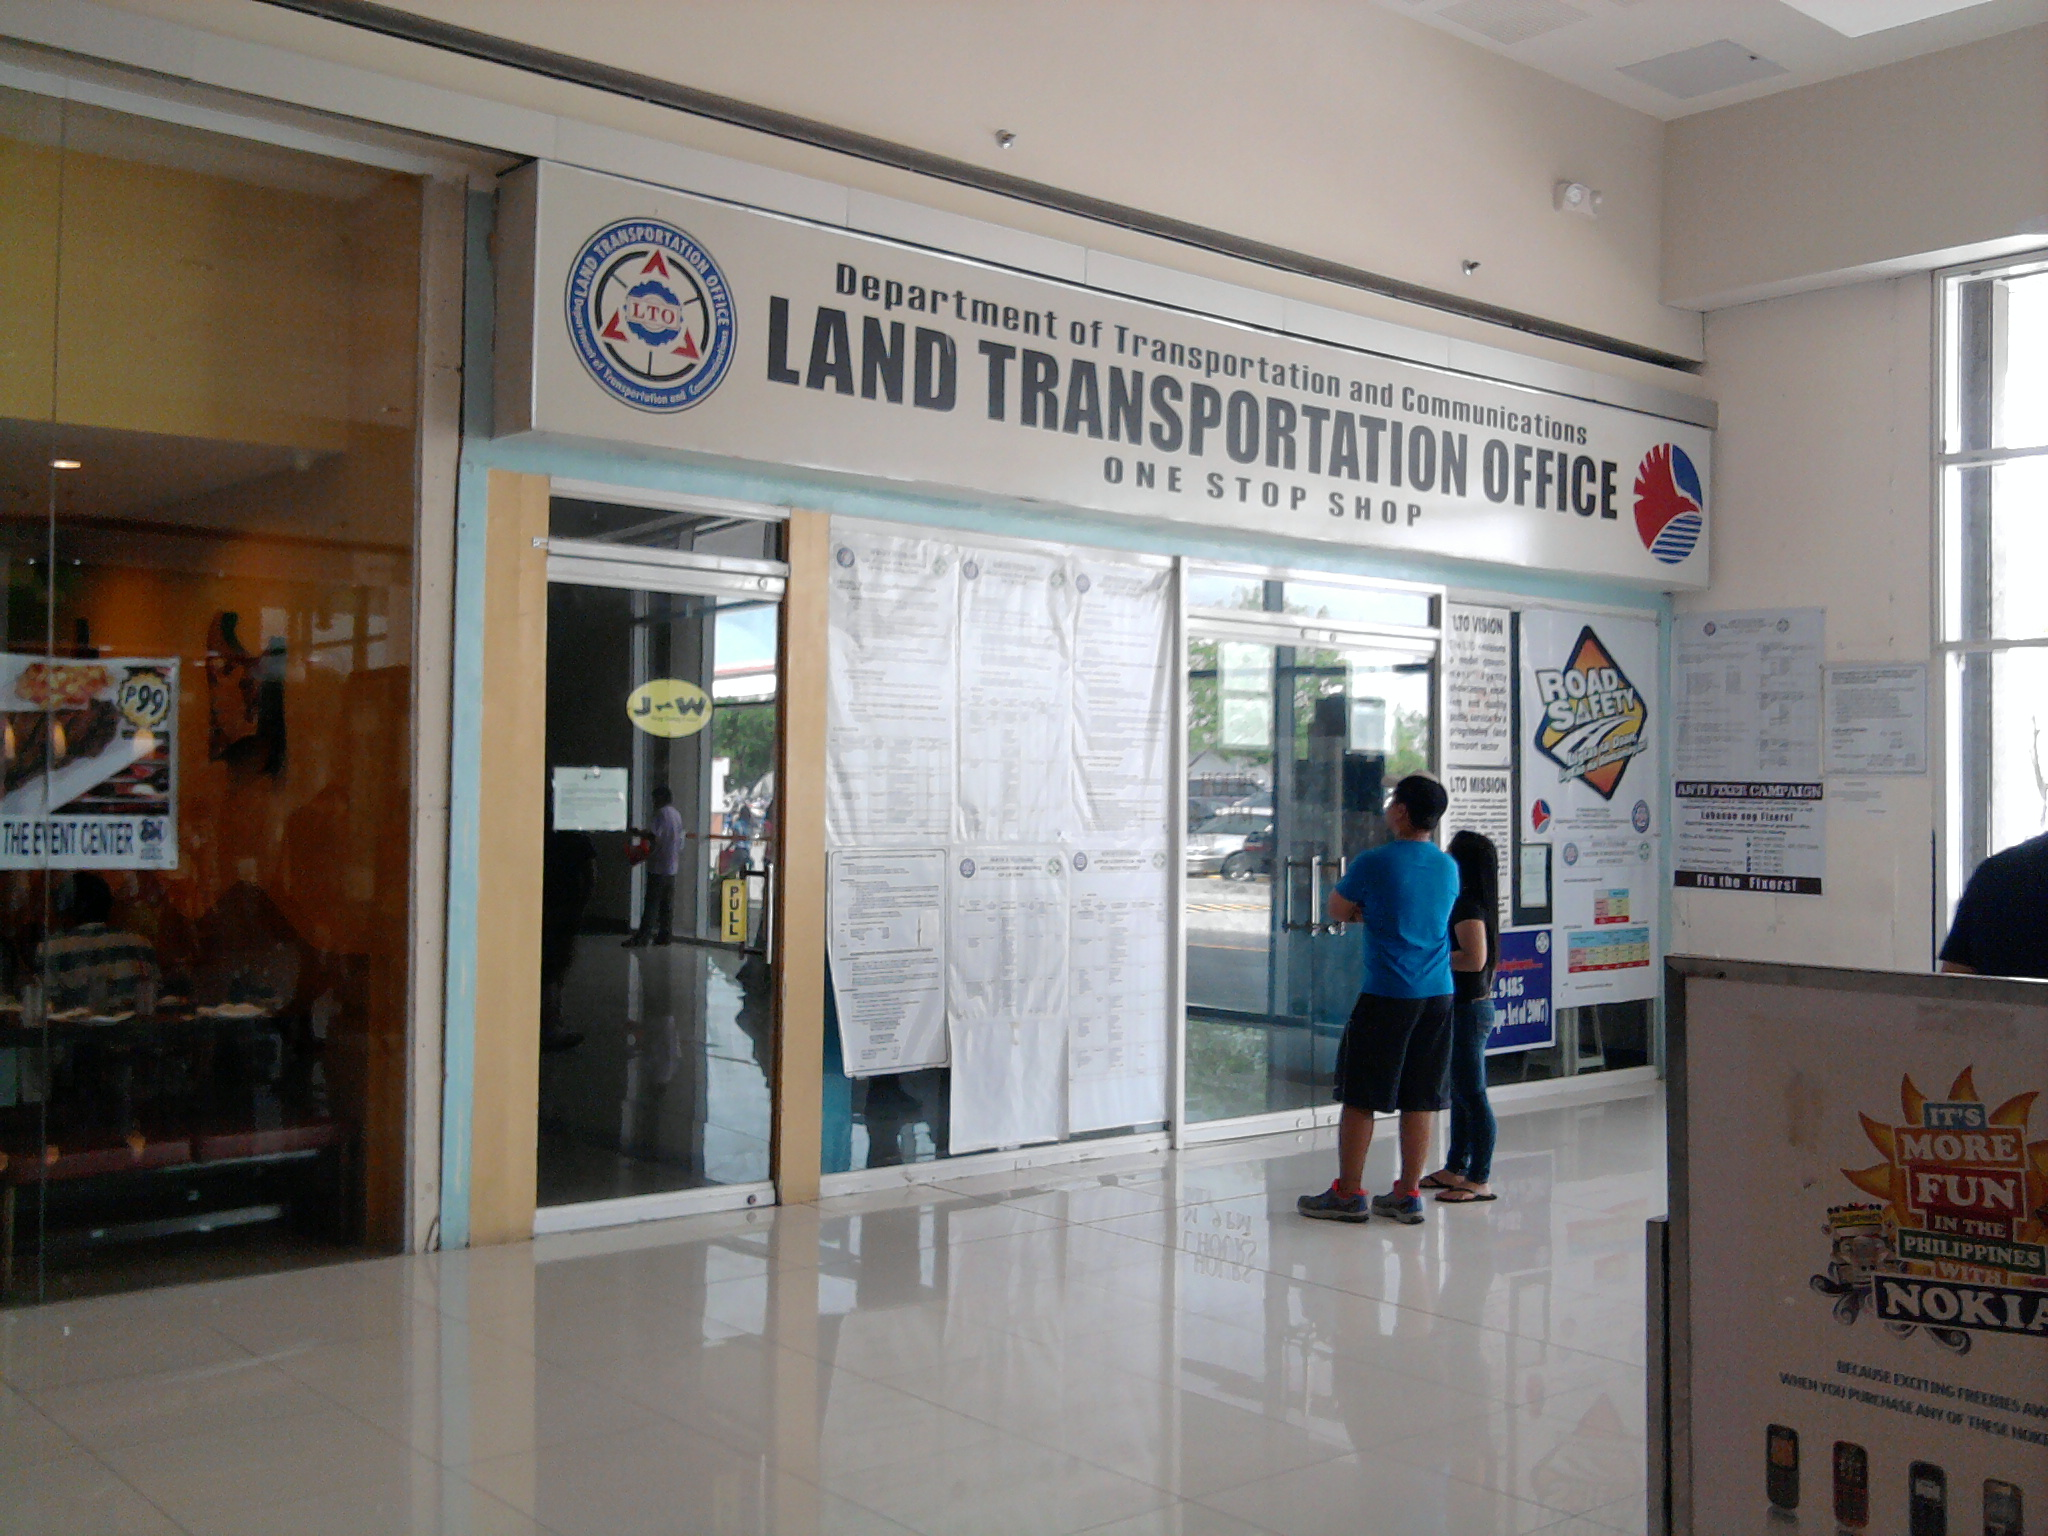 land transportation office in philippines See 3 photos from 88 visitors to land transportation office.